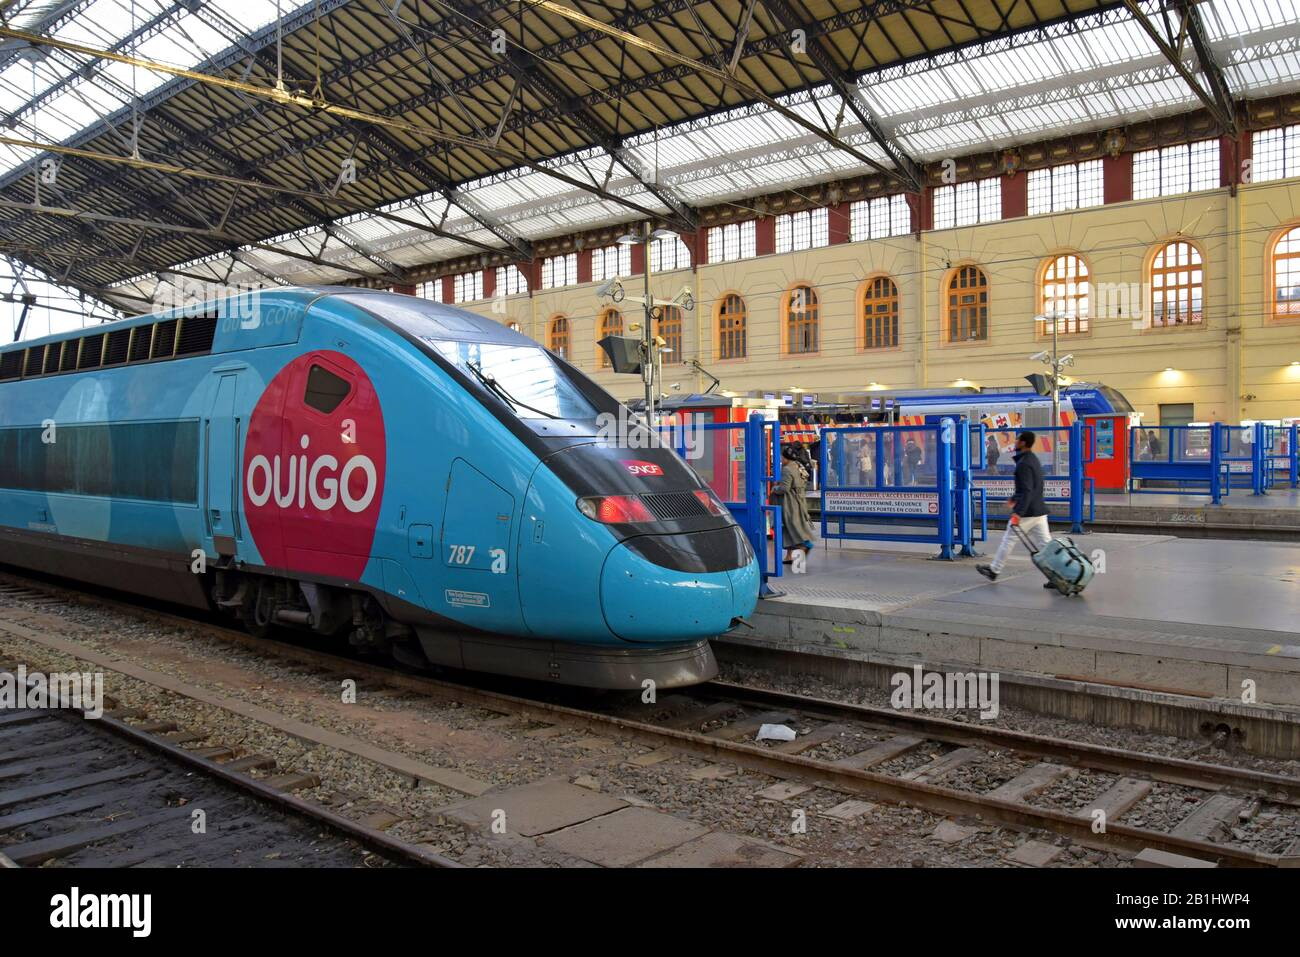 what is ouigo in france